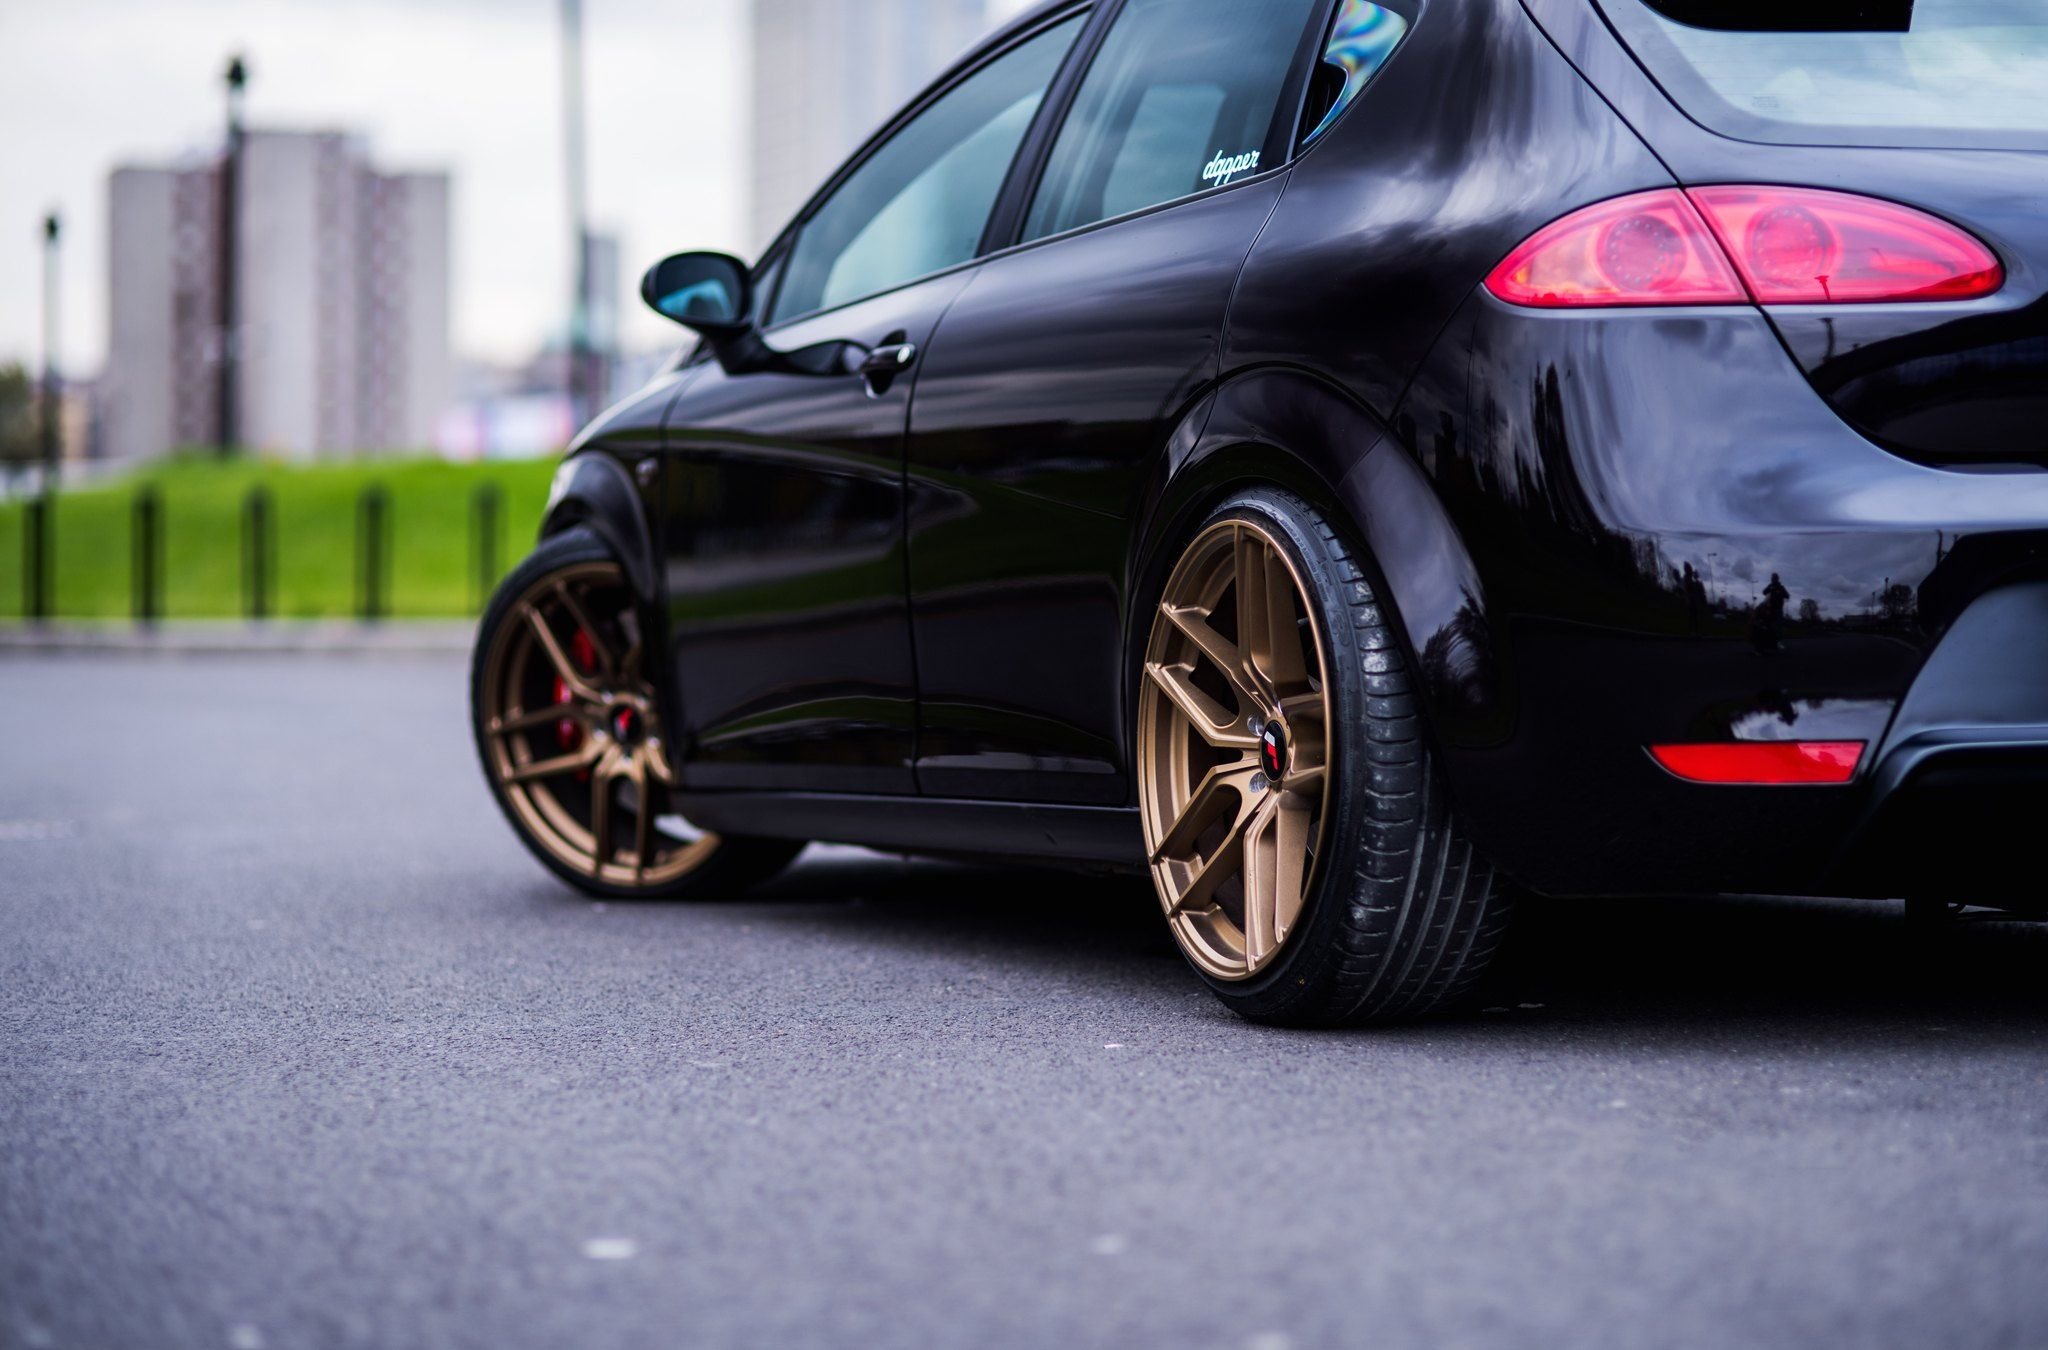 Black Seat Leon Sits Well On Jr Rims With Brembo Brakes Con